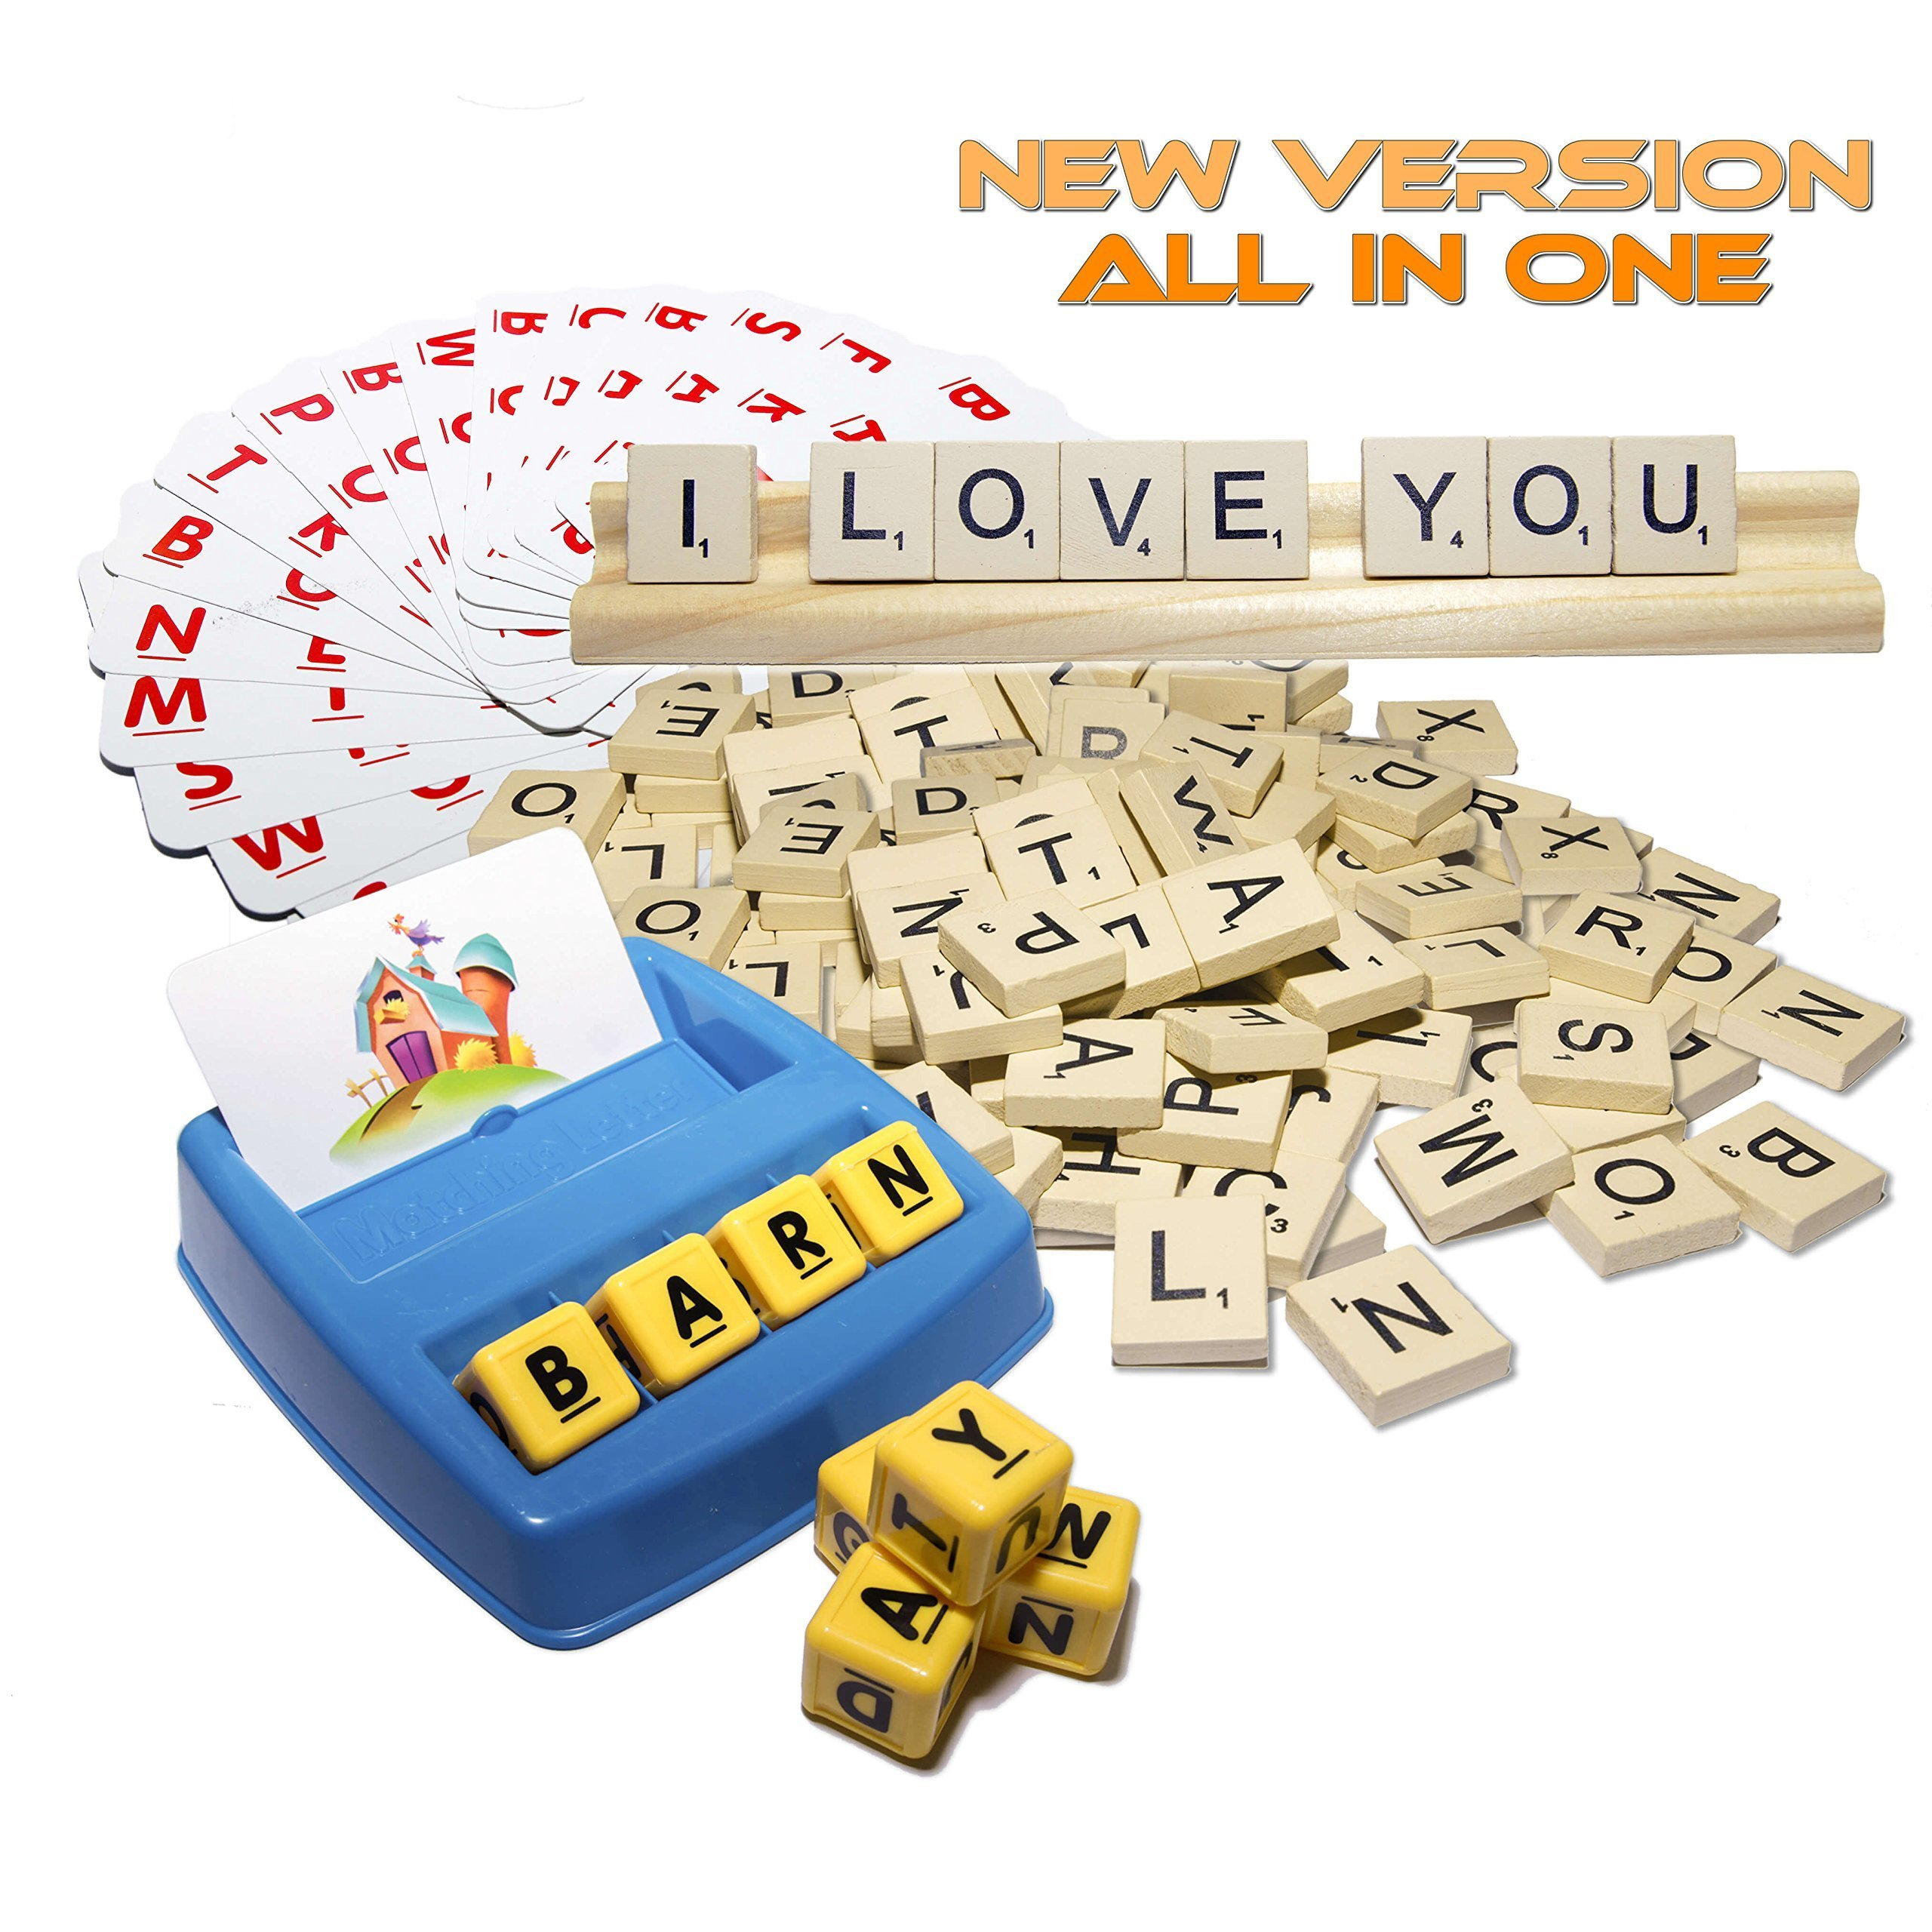 Cheap 3 Letter Word Games Find 3 Letter Word Games Deals On Line At